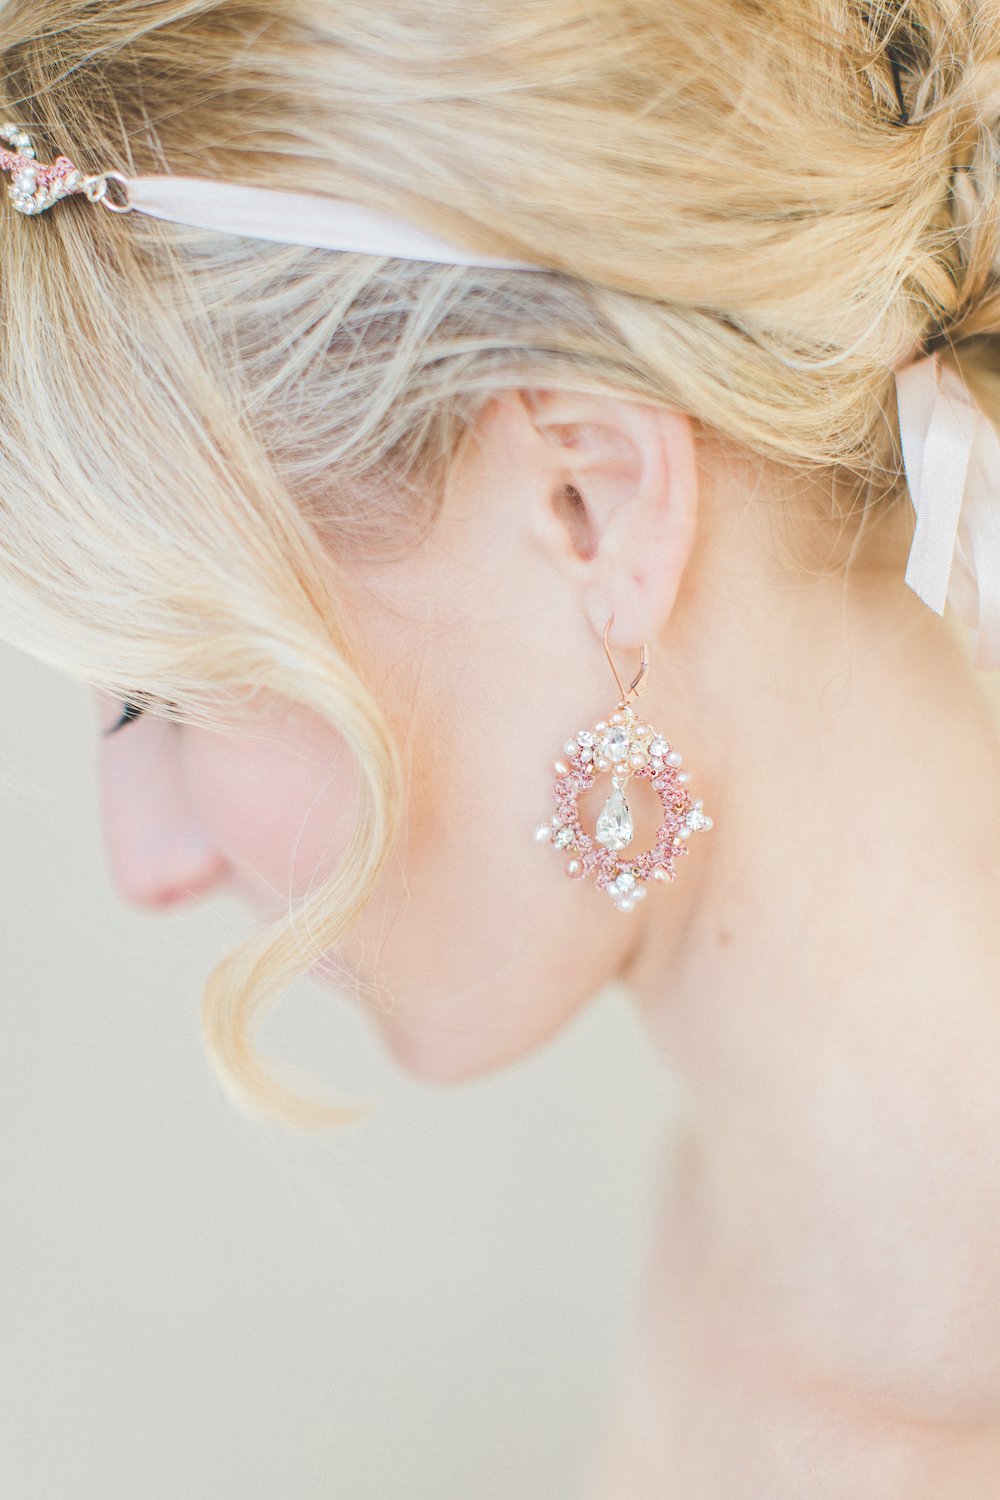 rose gold wedding earrings and hair vine